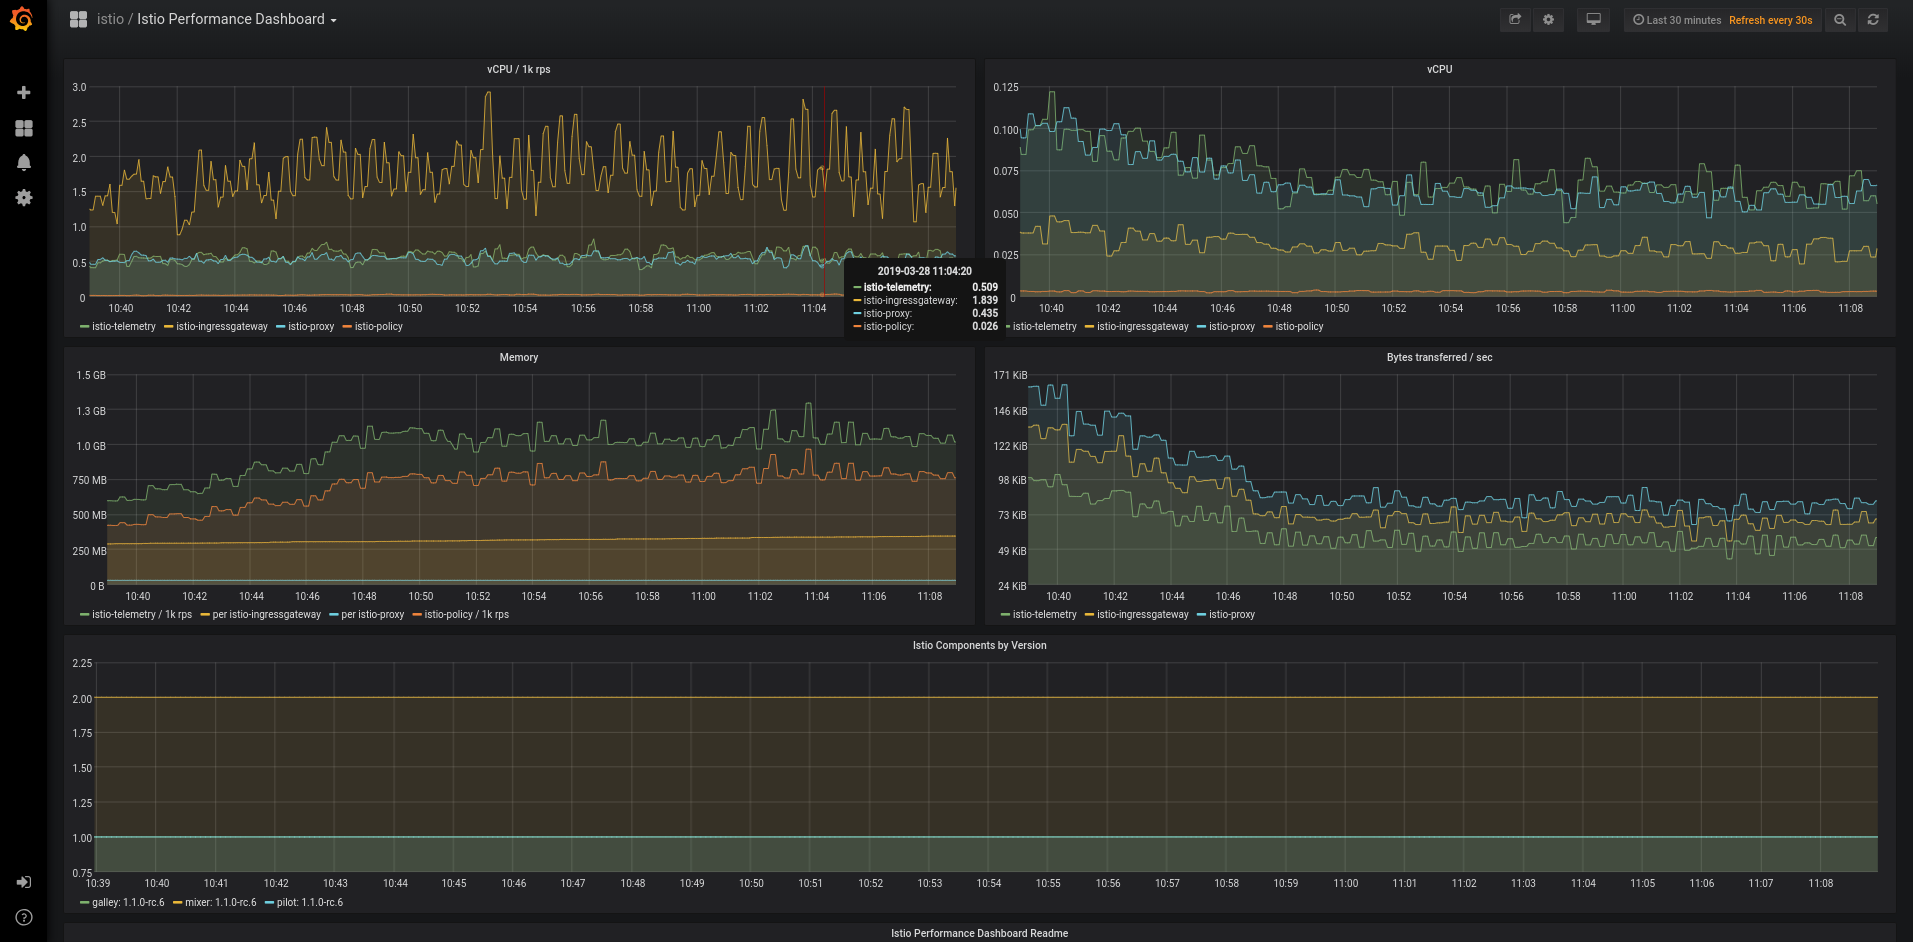 Grafana - Istio Performance Dashboard